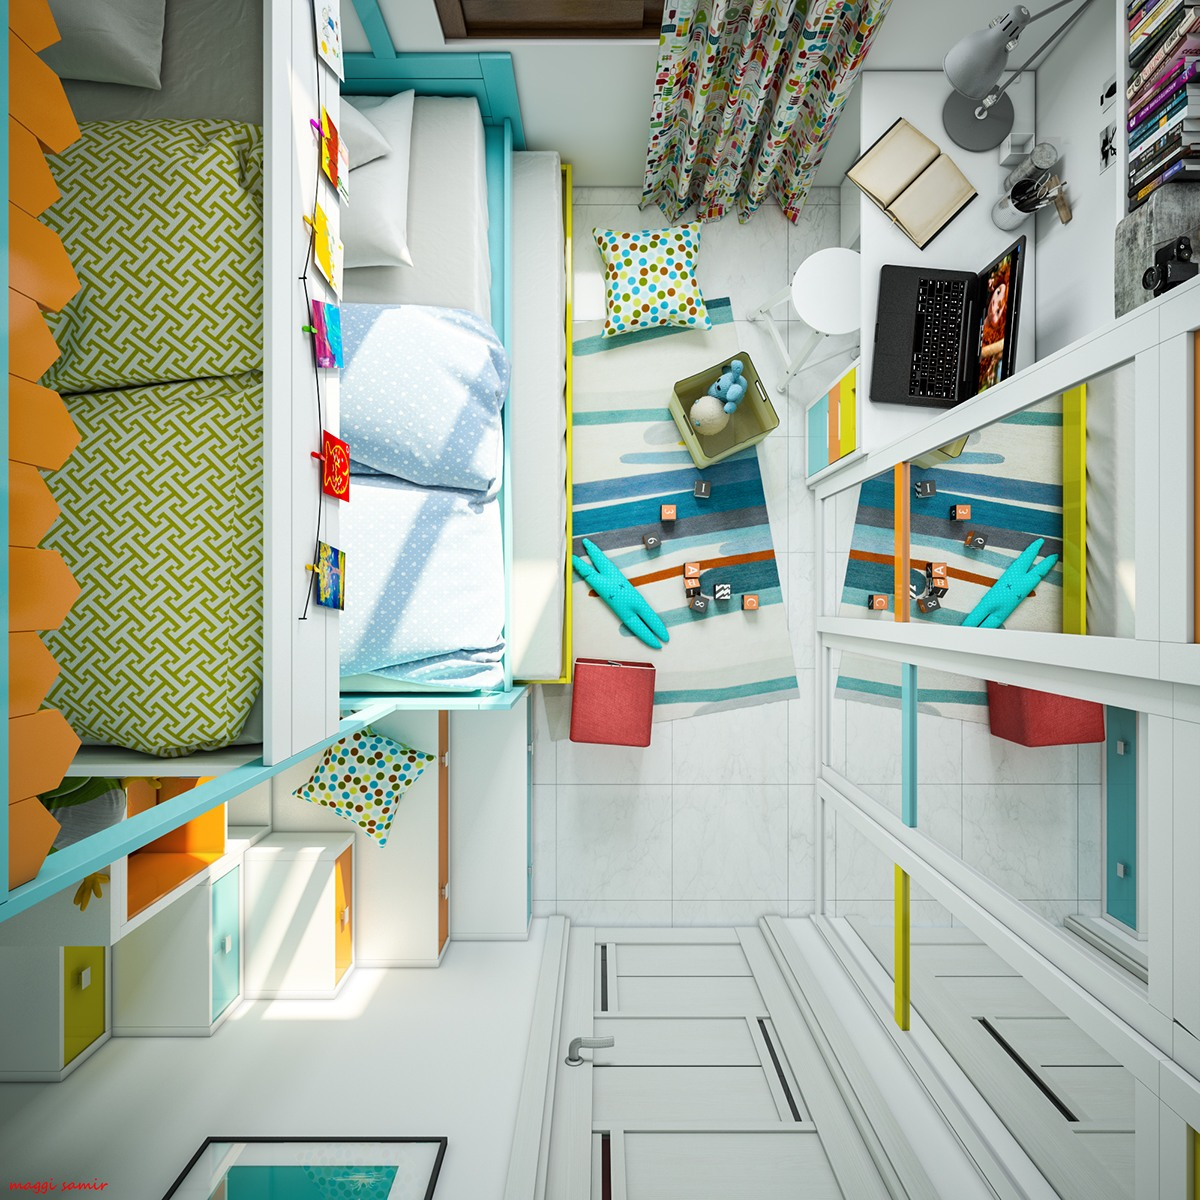 Kids Room Layout - Super colorful bedroom ideas for kids and teens